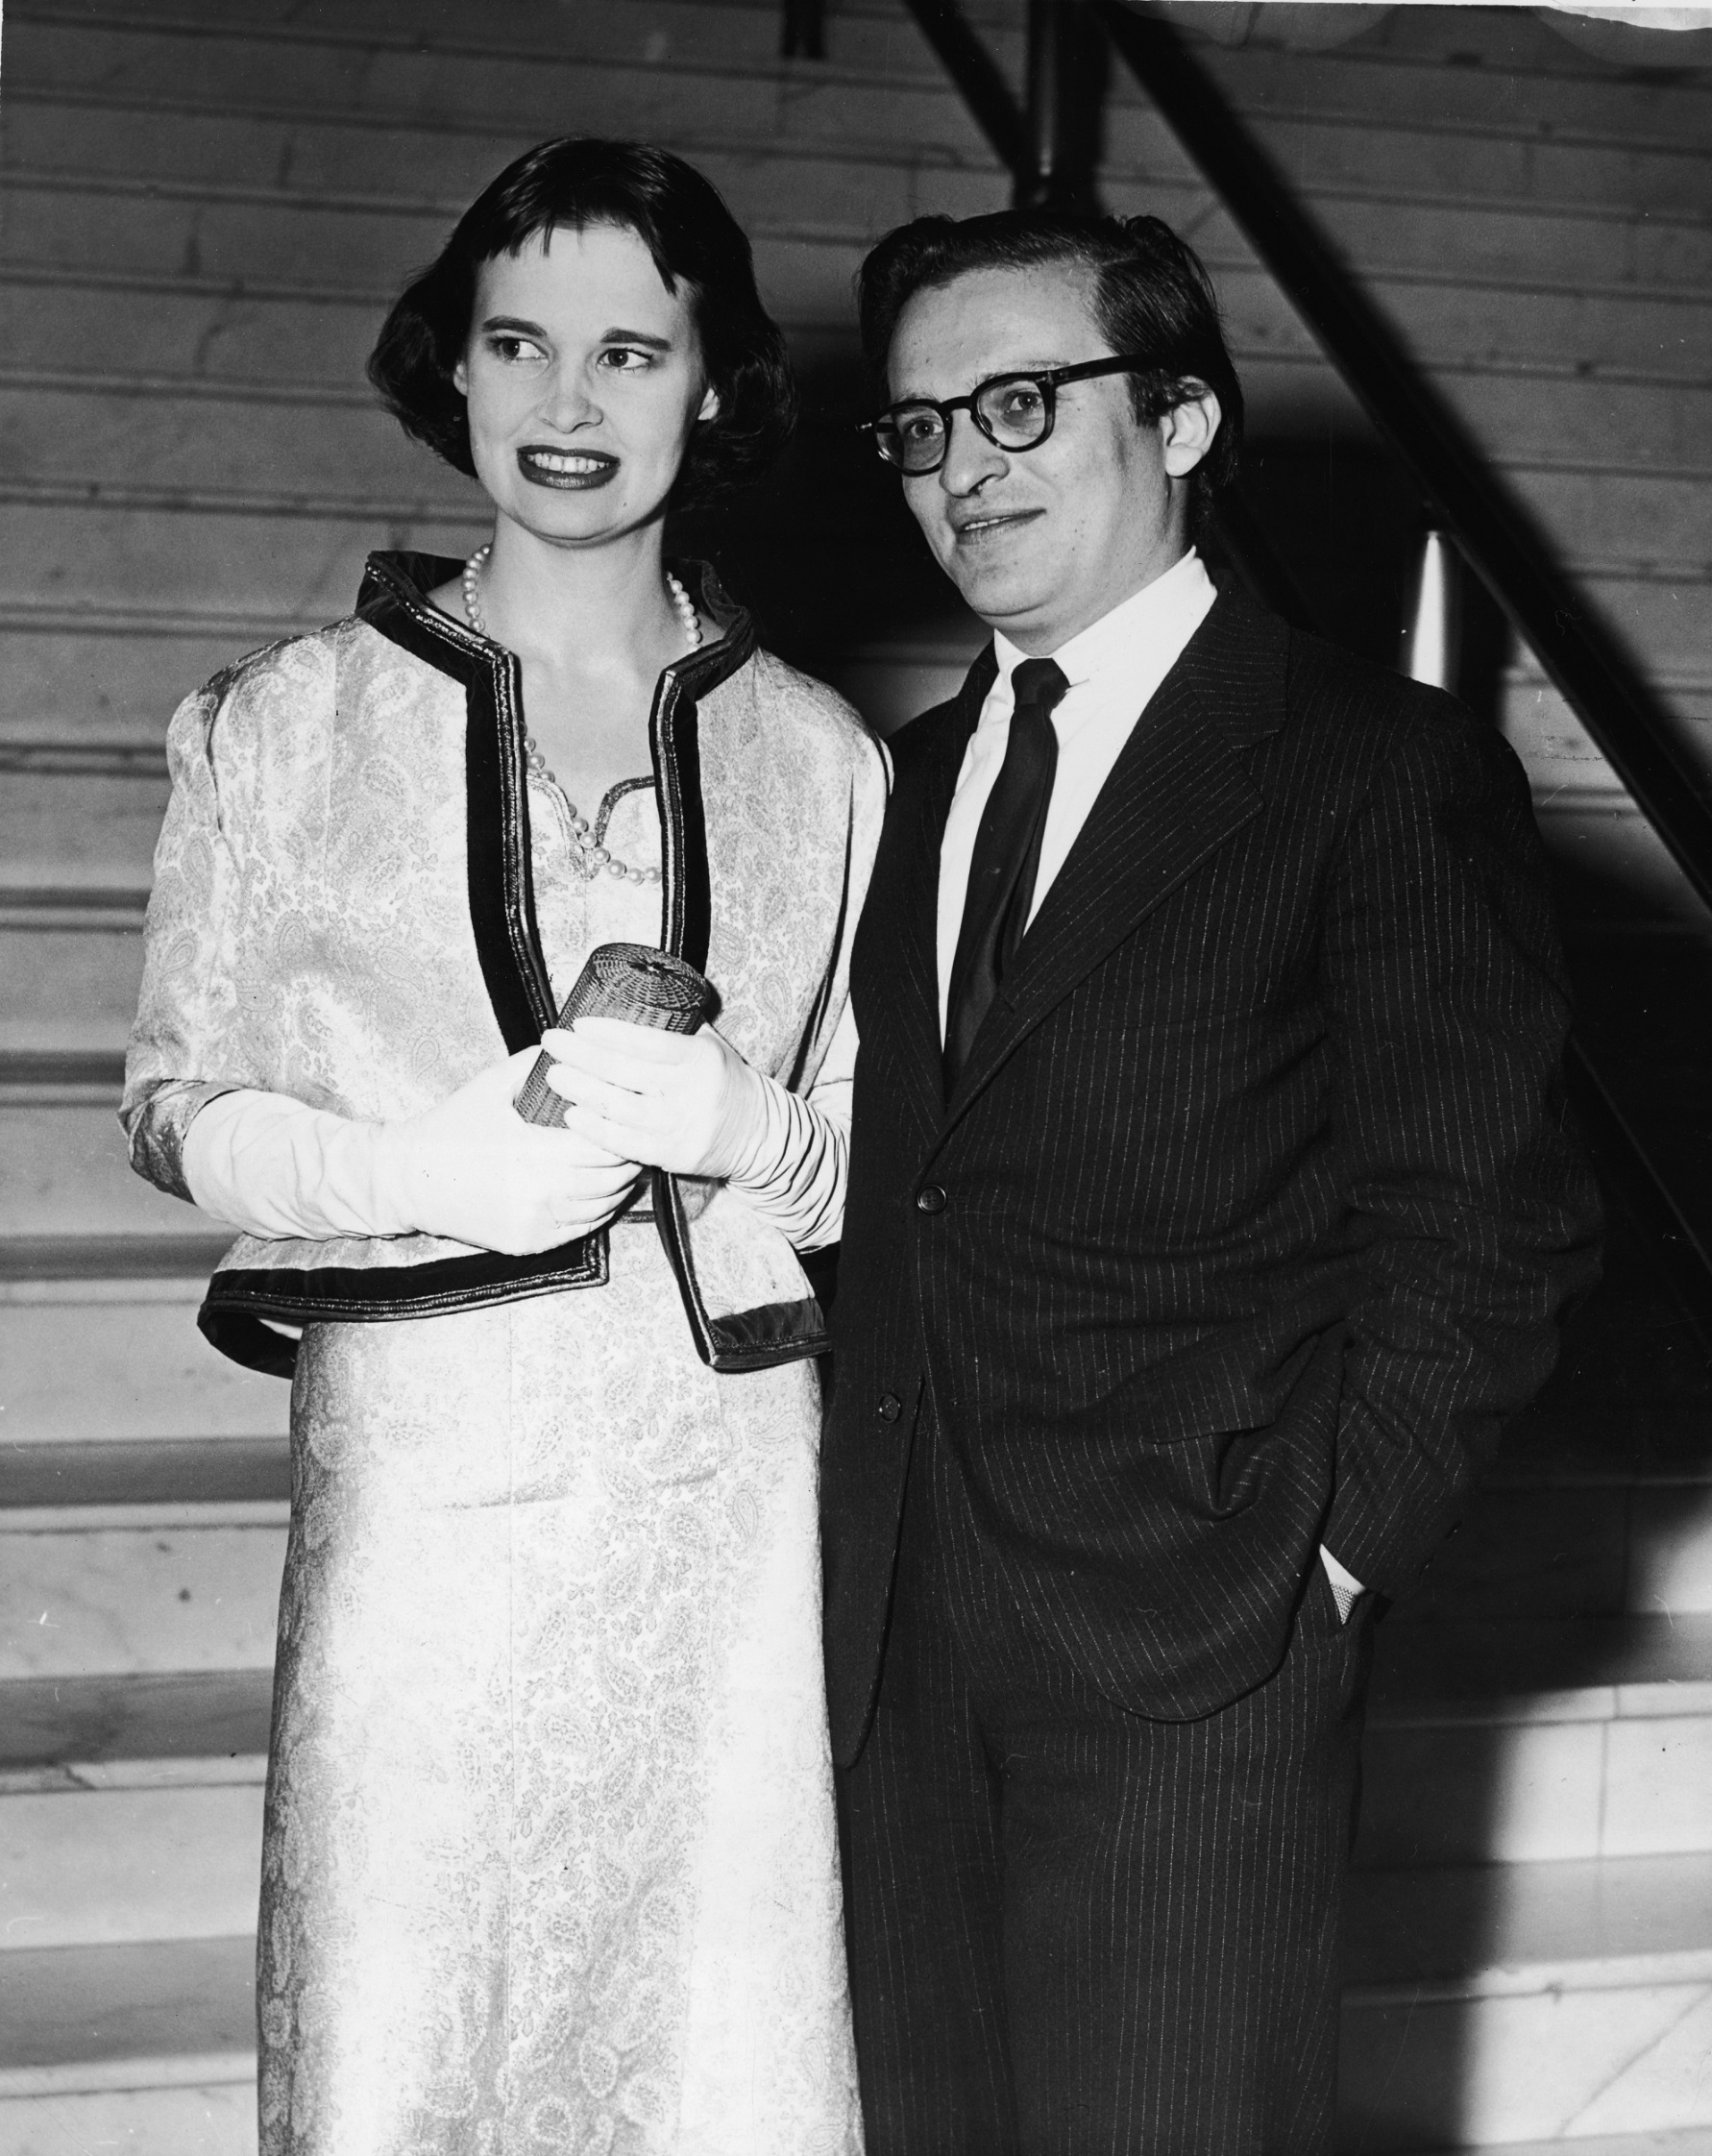 American heiress and designer Gloria Vanderbilt and her second husband American film director Sidney Lumet stand together at the foot of a marble staircase, early 1960s. (Photo by Getty Images)